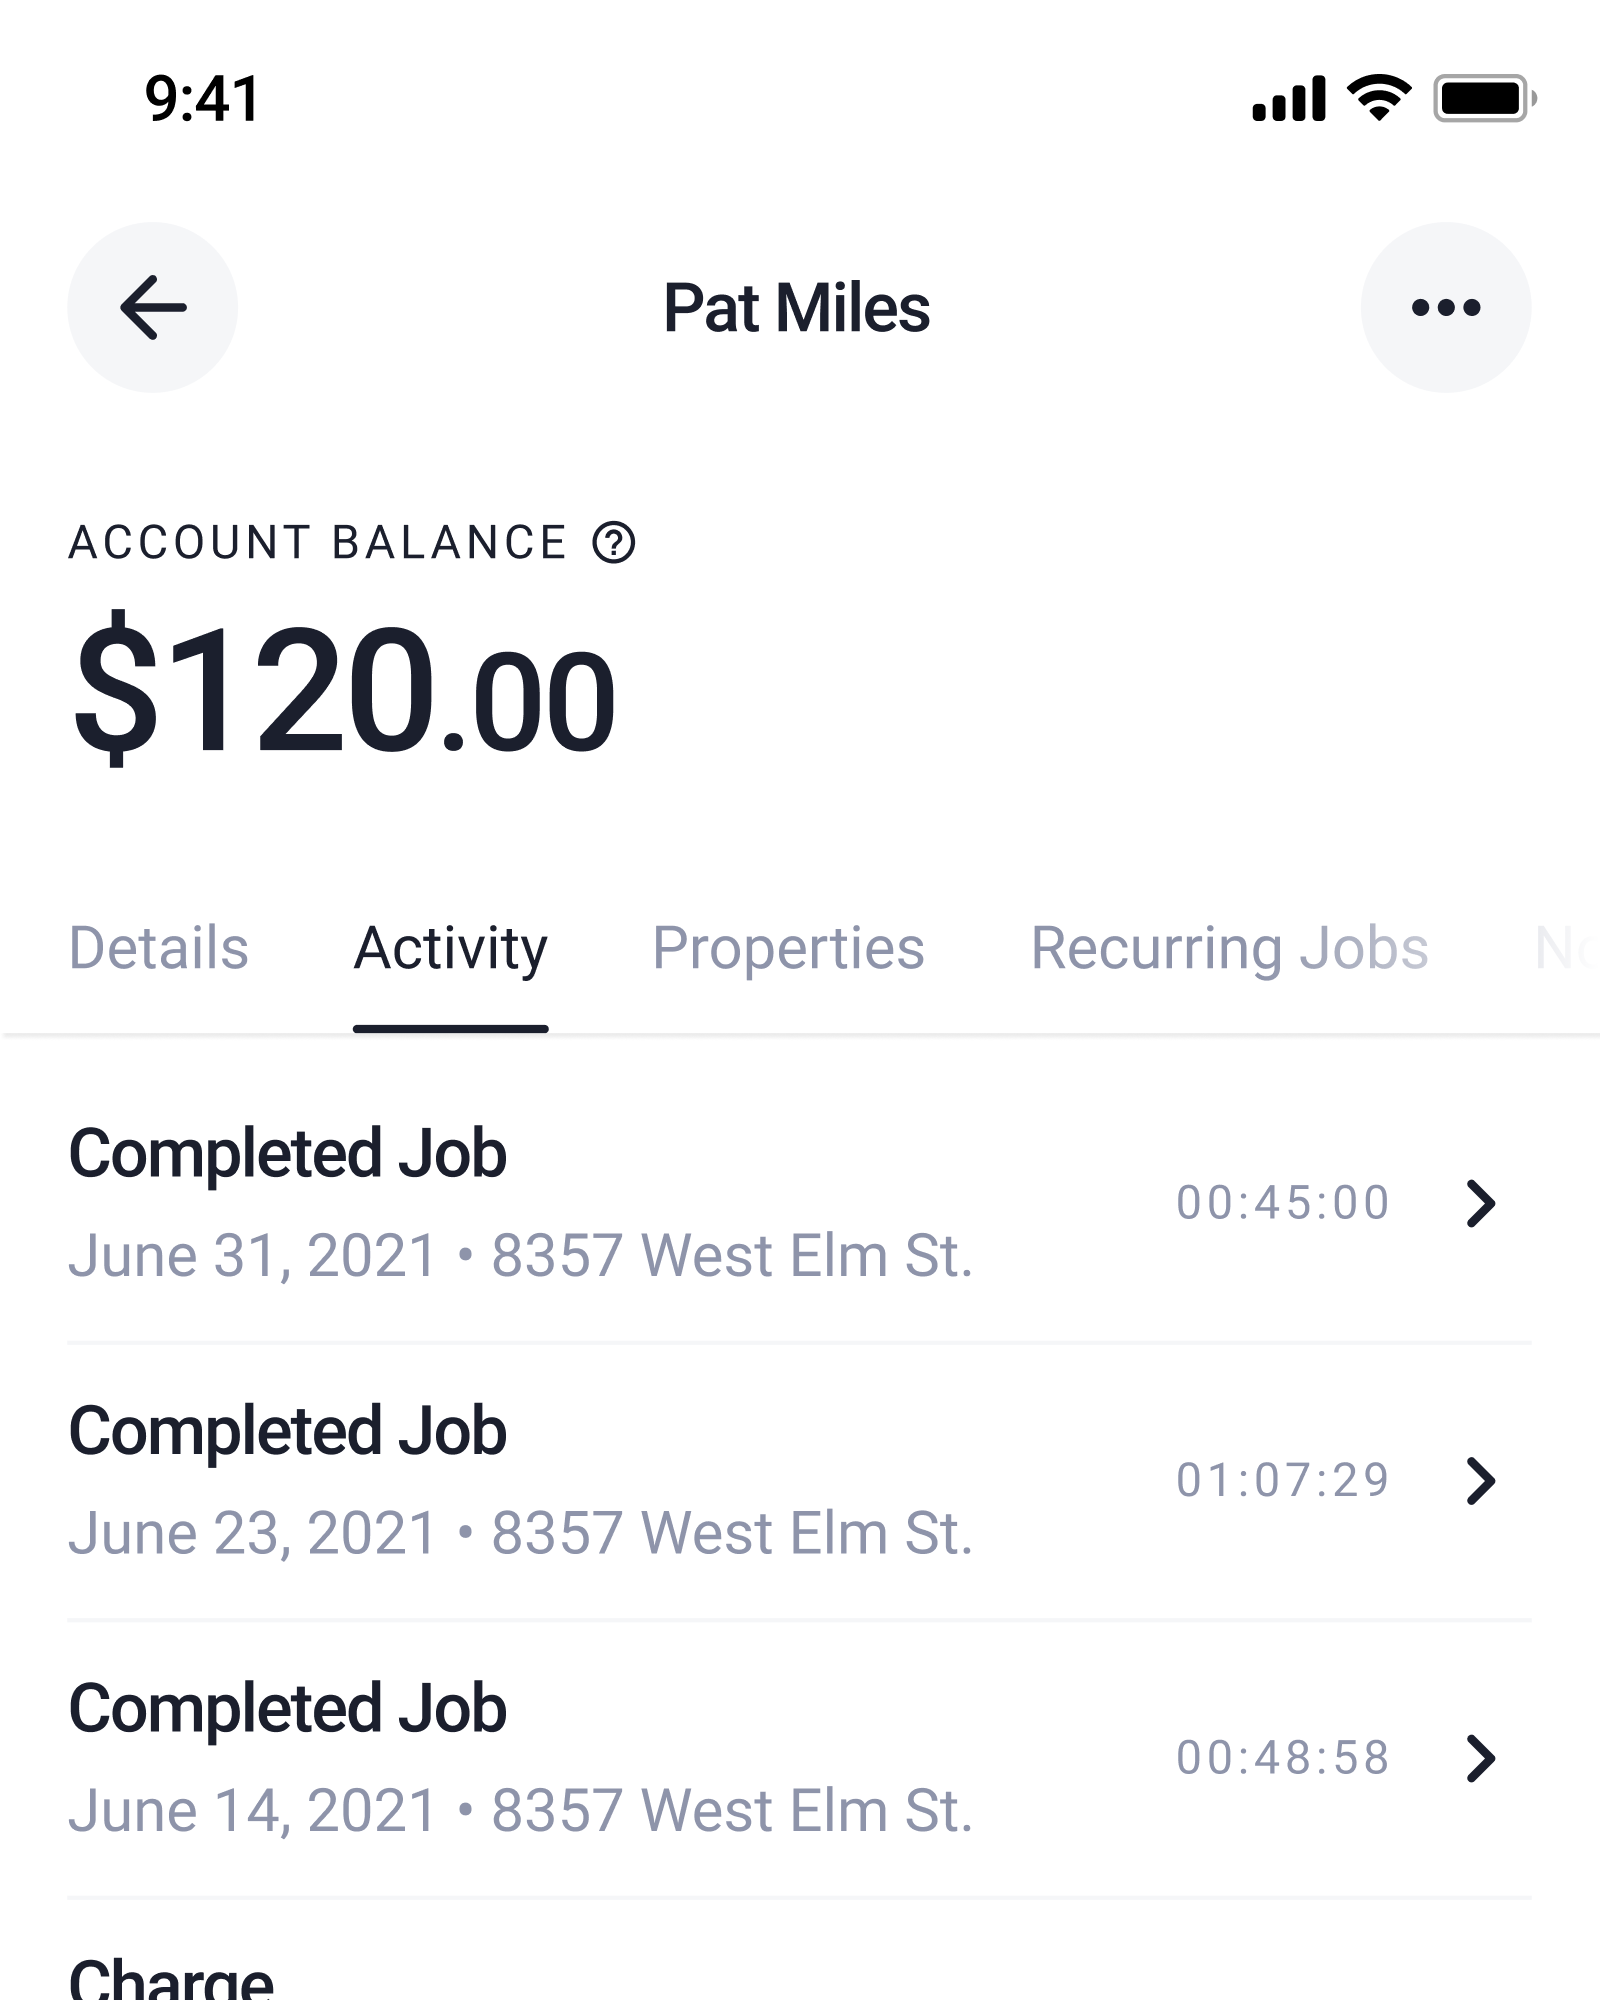 Screenshot of the Client Details screen in the Check App